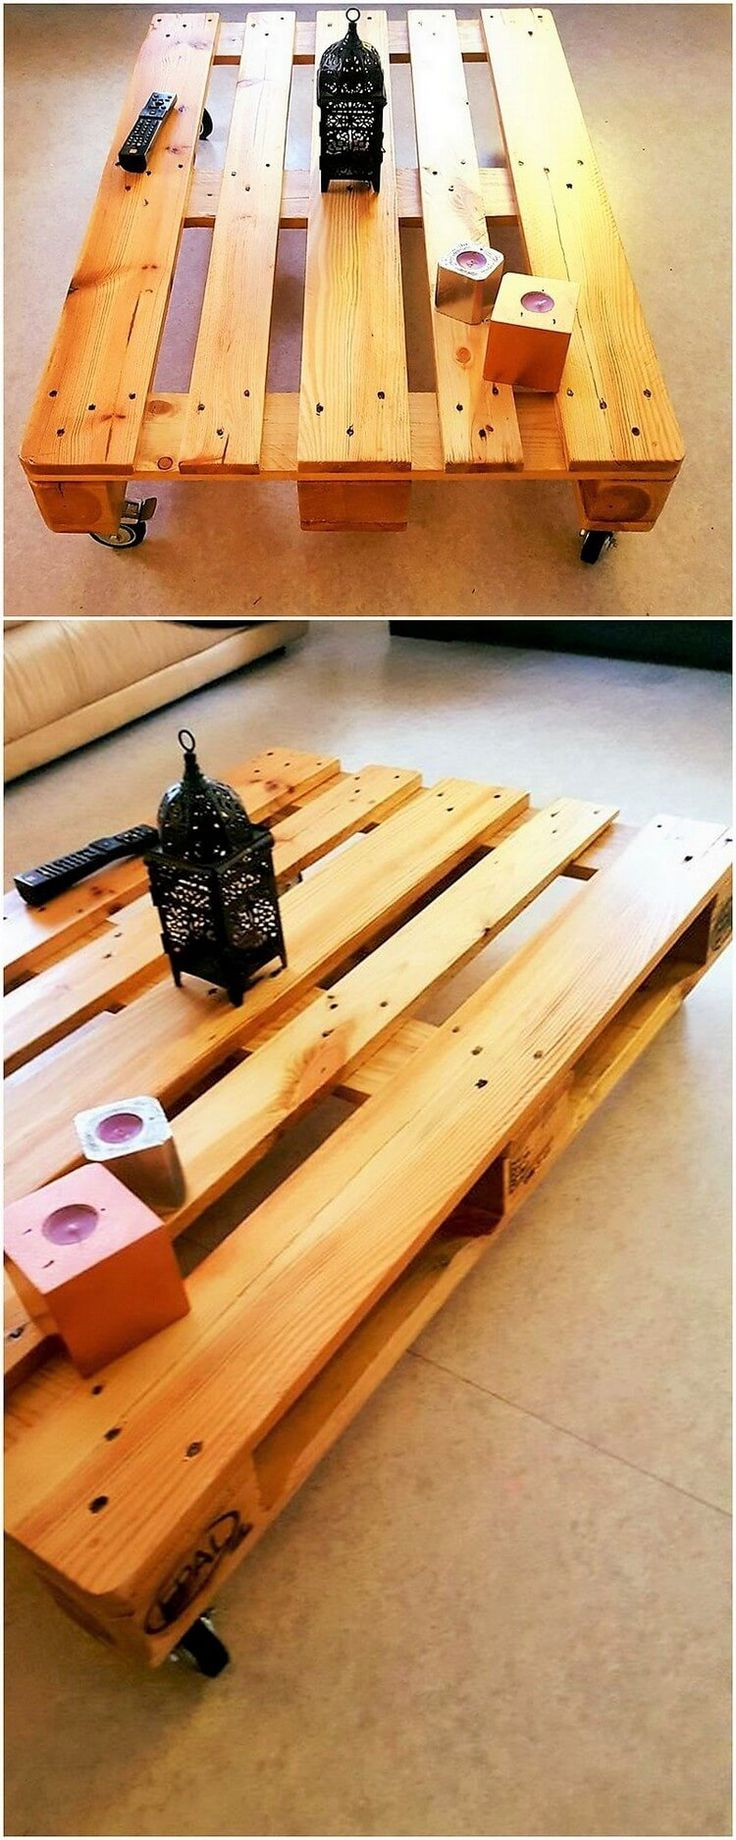 You can brilliantly make the use of the wood pallet for the perfect decoration project of the wood pallet rolling table. We are sure that this image will be giving you a lot inspirational idea to learn about this concept! You will be arranging the planks of wood pallet as it is but afterwards you will add attractiveness into it through artwork over it.